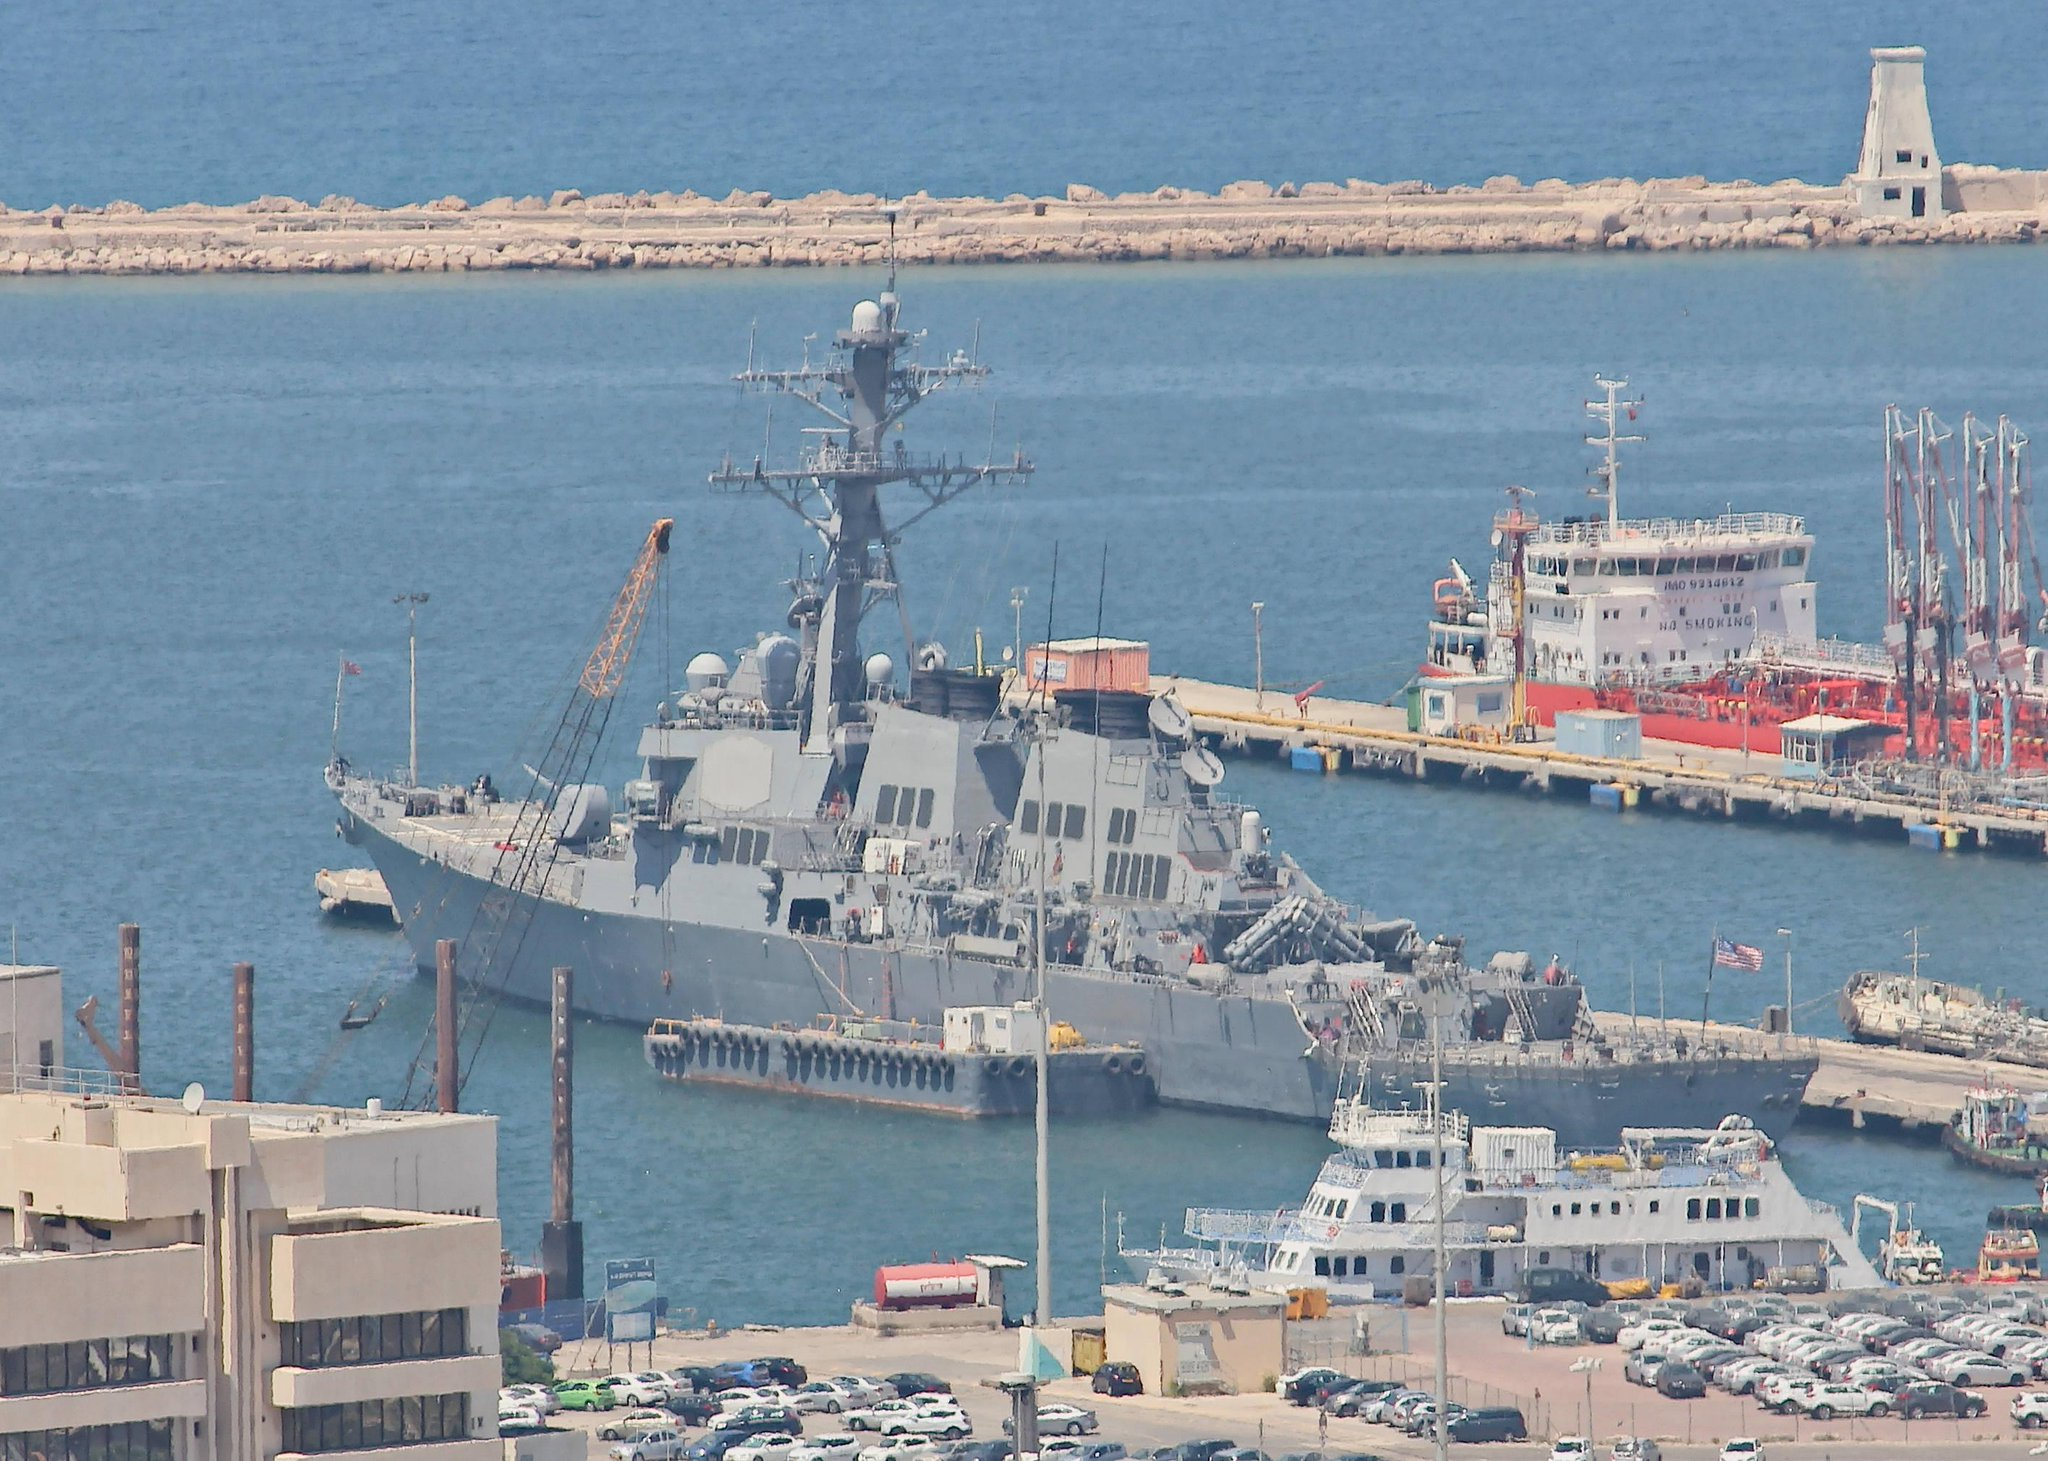 Arleigh Burke-class guided missile destroyer USS Porter (DDG-78)